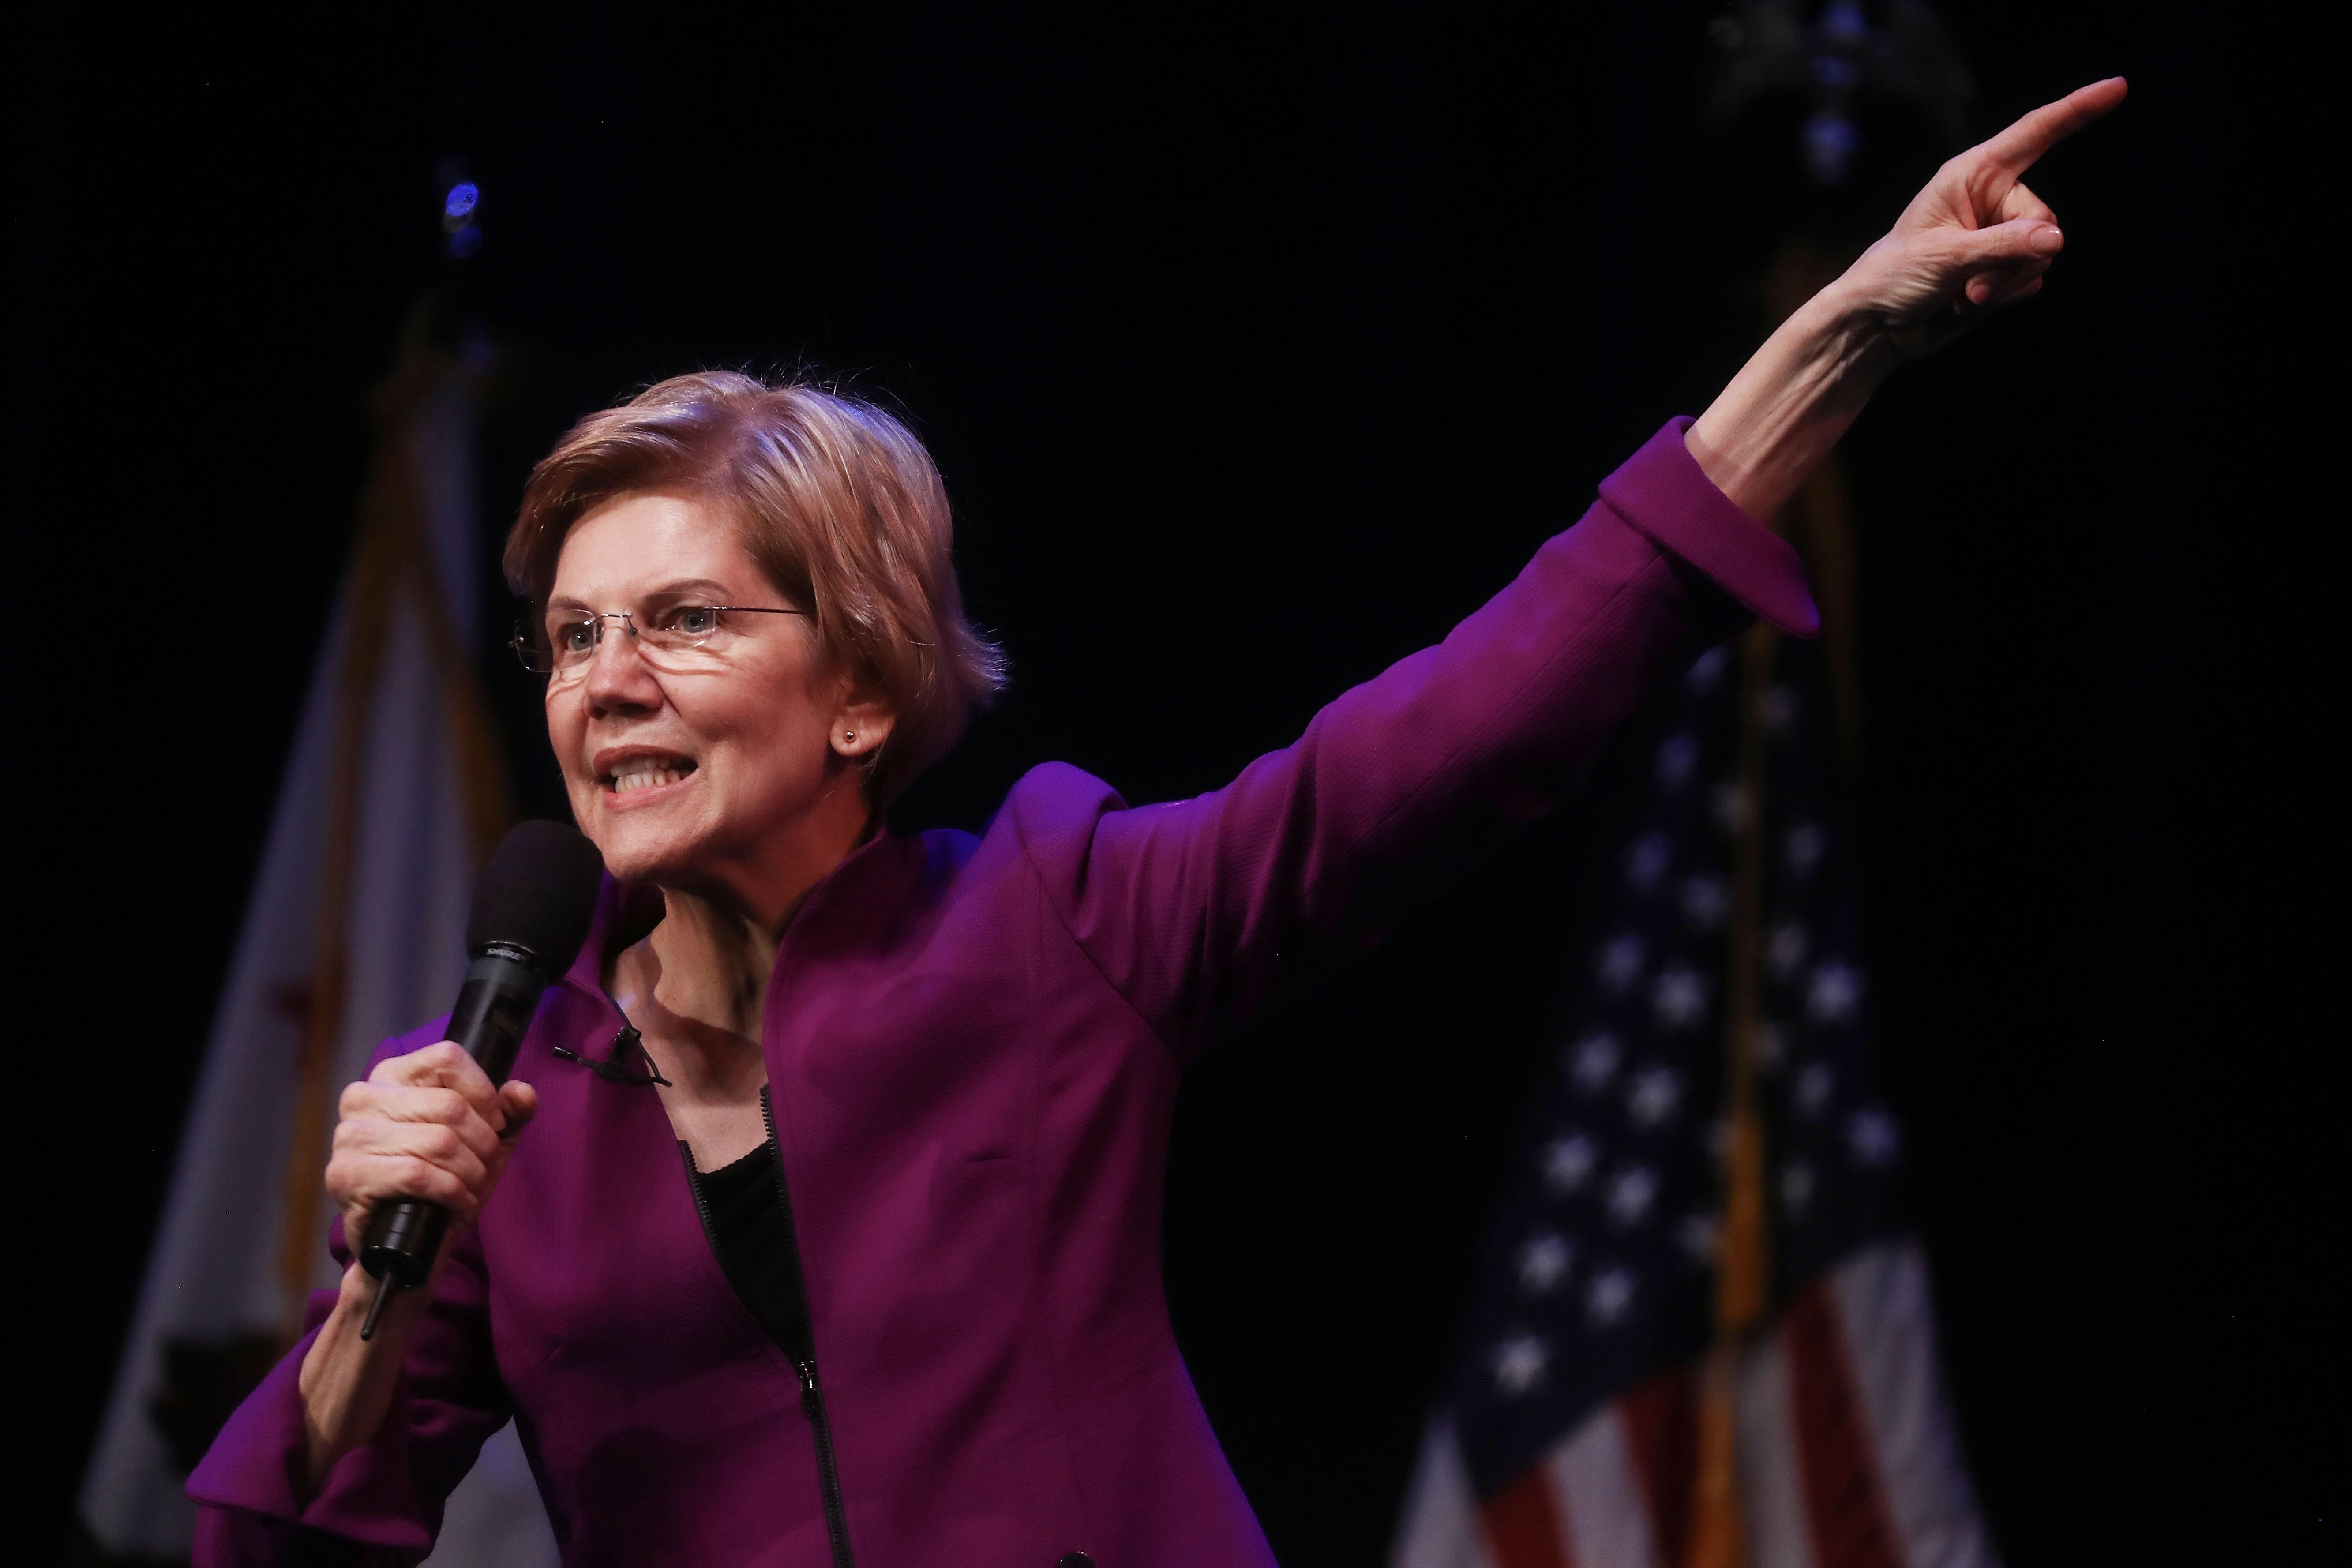 GLENDALE, CA - FEBRUARY 18:  U.S. Senator and Democratic presidential candidate Elizabeth Warren (D-MA) speaks at an organizing event on February 18, 2019 in Glendale, California. Warren is attempting to become the Democratic nominee in a crowded 2020 presidential field and is the first candidate to have a public campaign event in the metropolitan area of Los Angeles.  (Photo by Mario Tama/Getty Images)